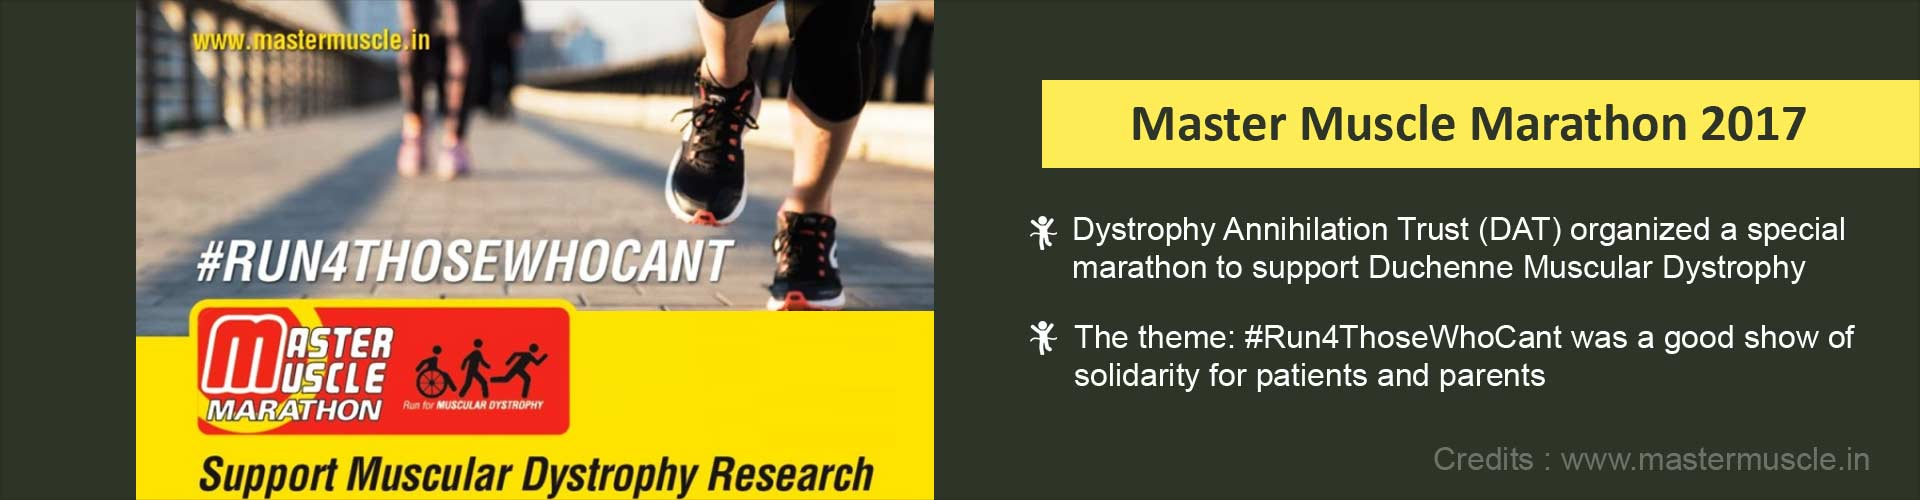 Master Muscle Marathon 2017: Run for Duchenne Muscular Dystrophy